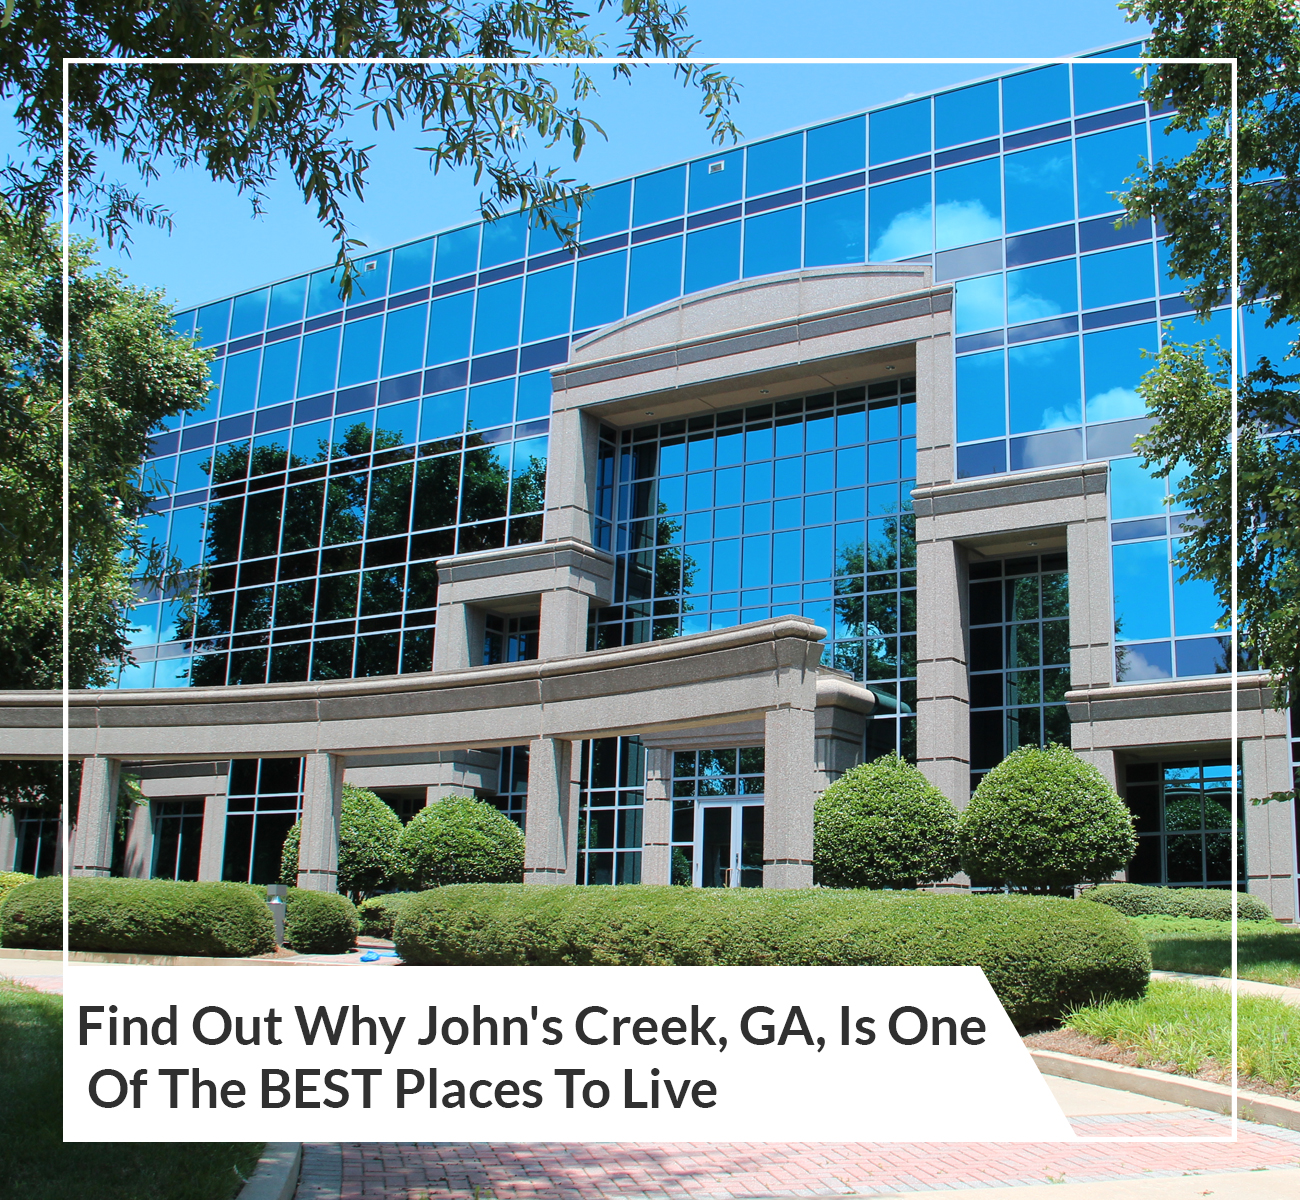 Why Johns Creek Best Place to Live